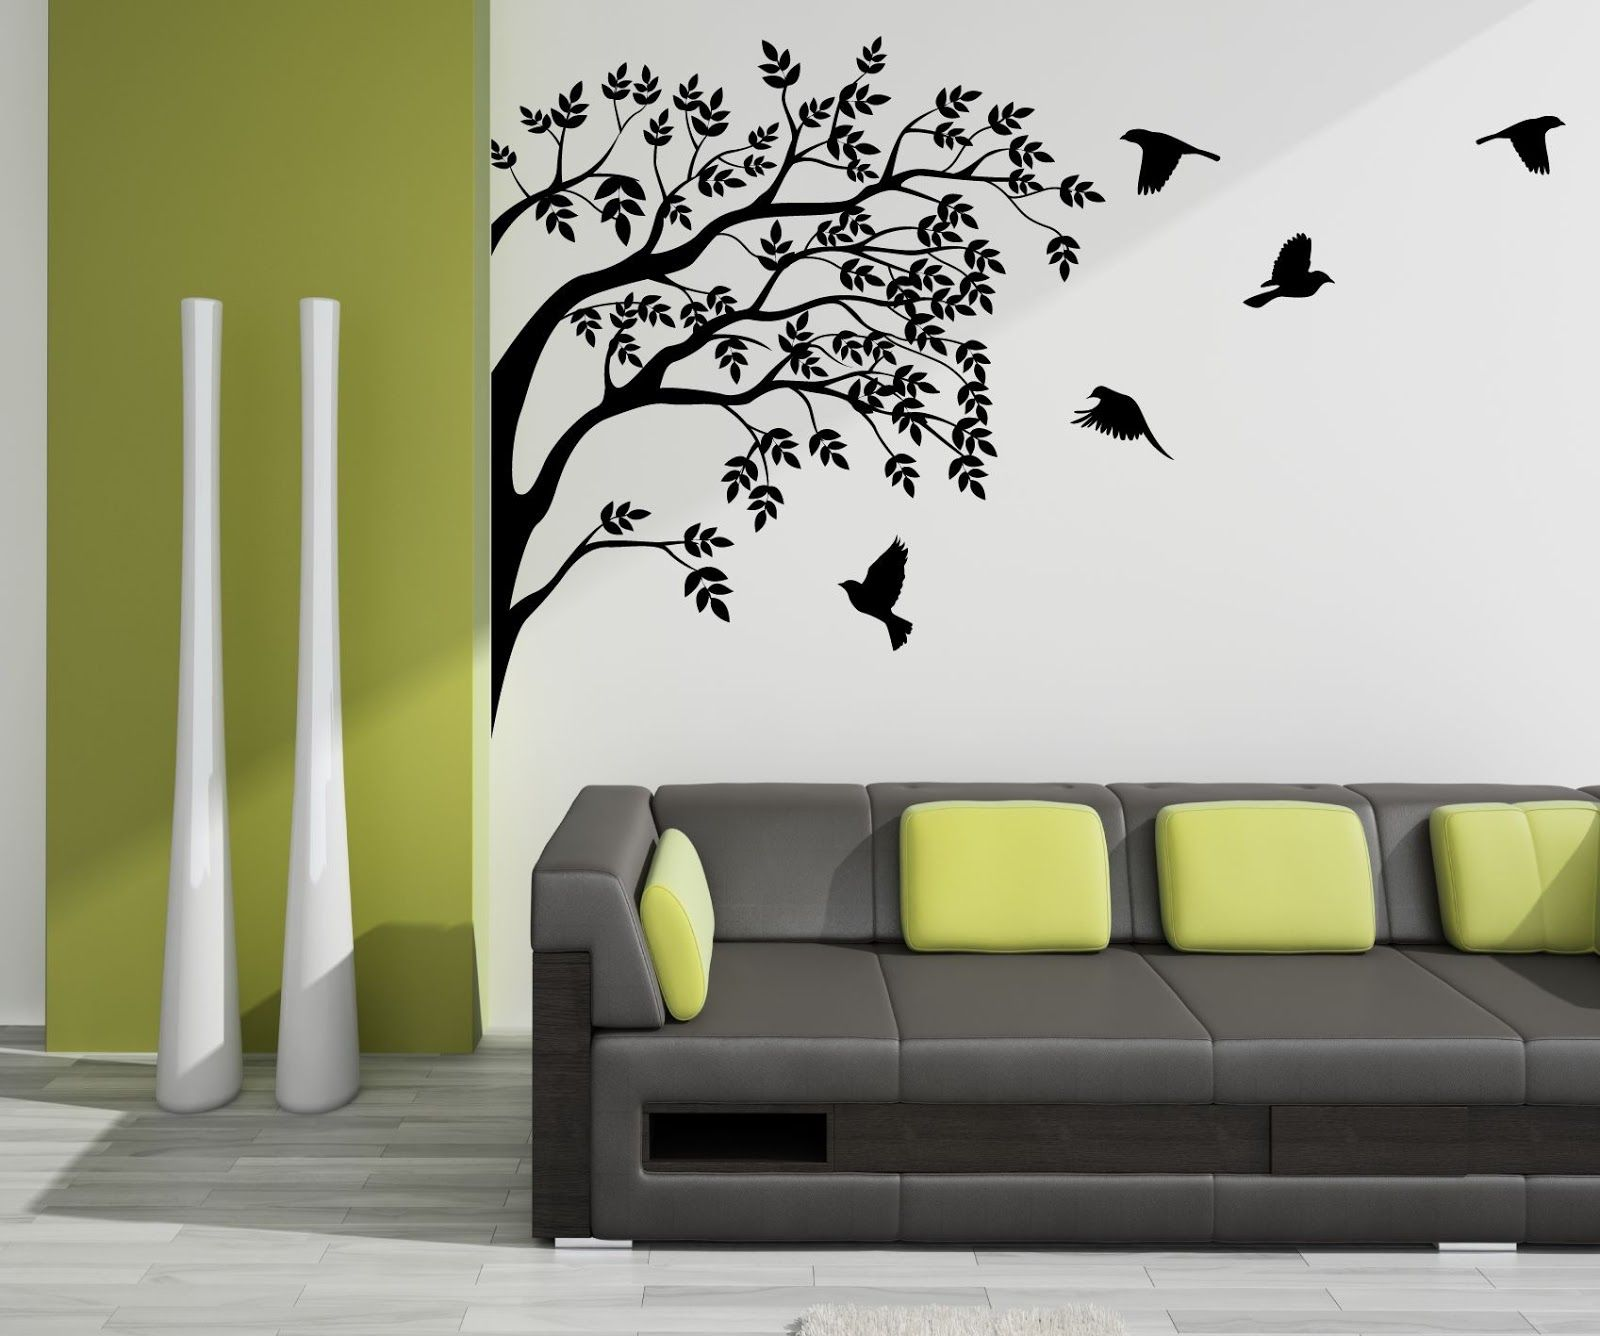 Wall Art Design Ideas innovative decoration wall art ideas beautiful design ideas 40 easy wall art to decorate your home High Resolution Image Home Design Ideas Wall Designs 1600x1336 Online Raster To Vector Conversion Services Vinyl